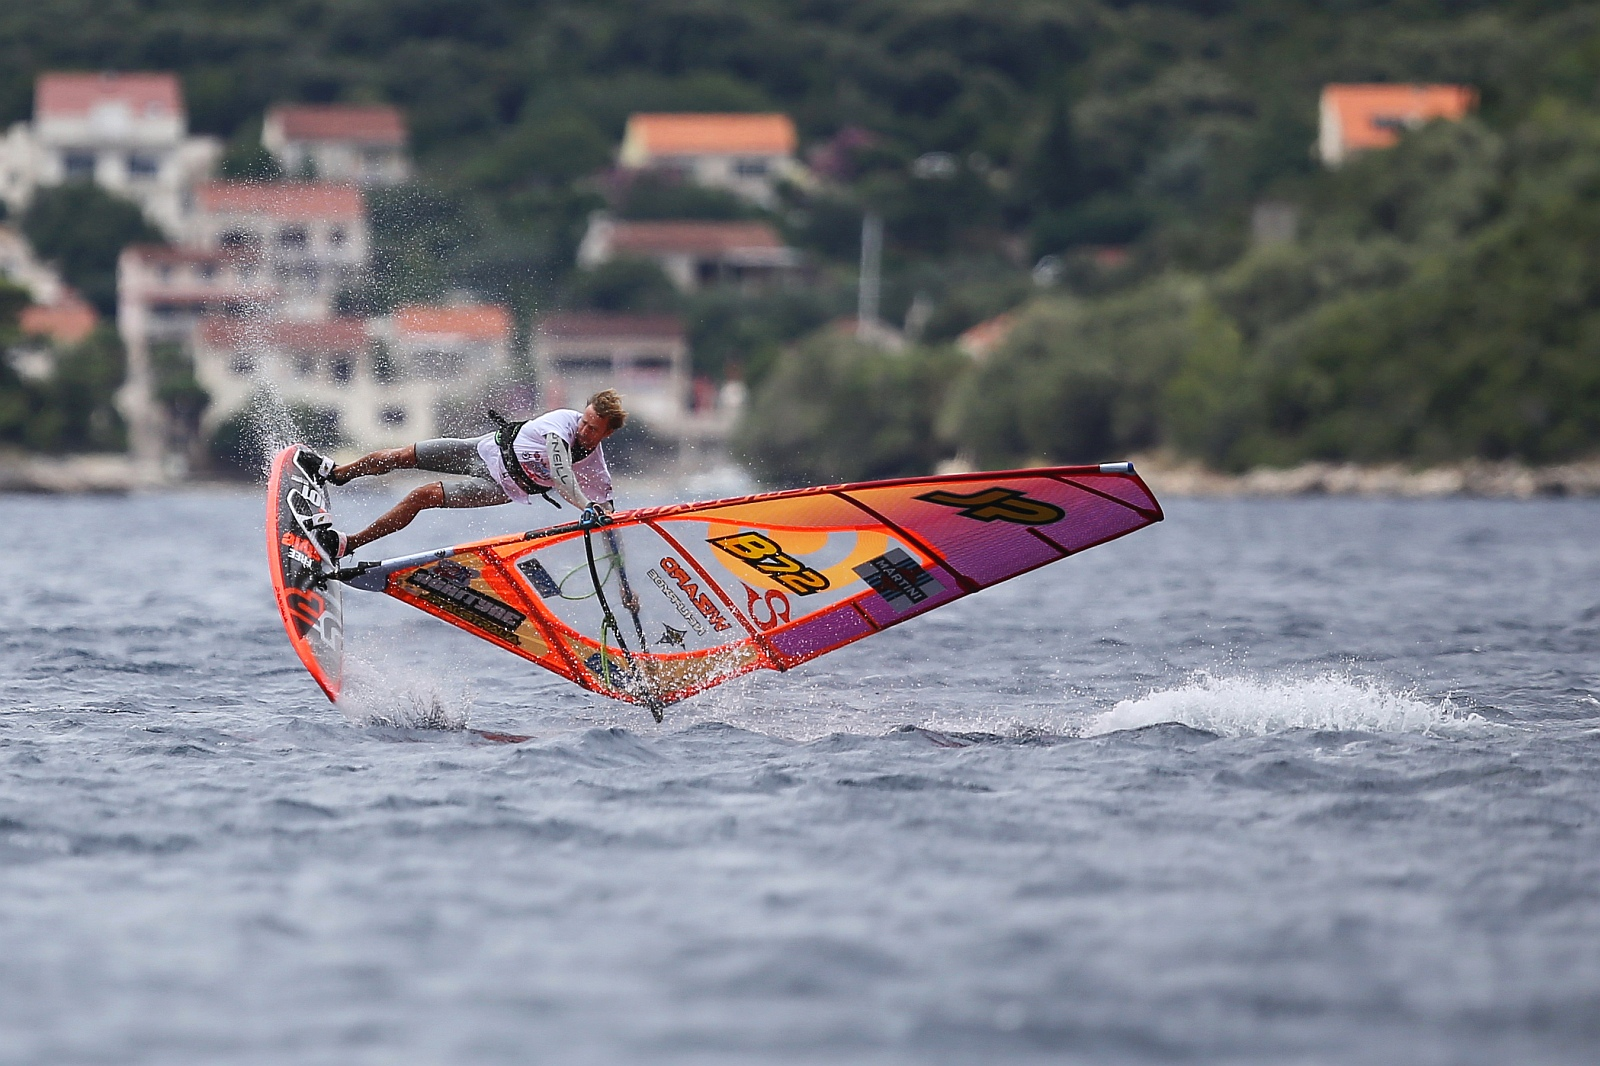 Windy days at the Martini EFPT Croatia in August